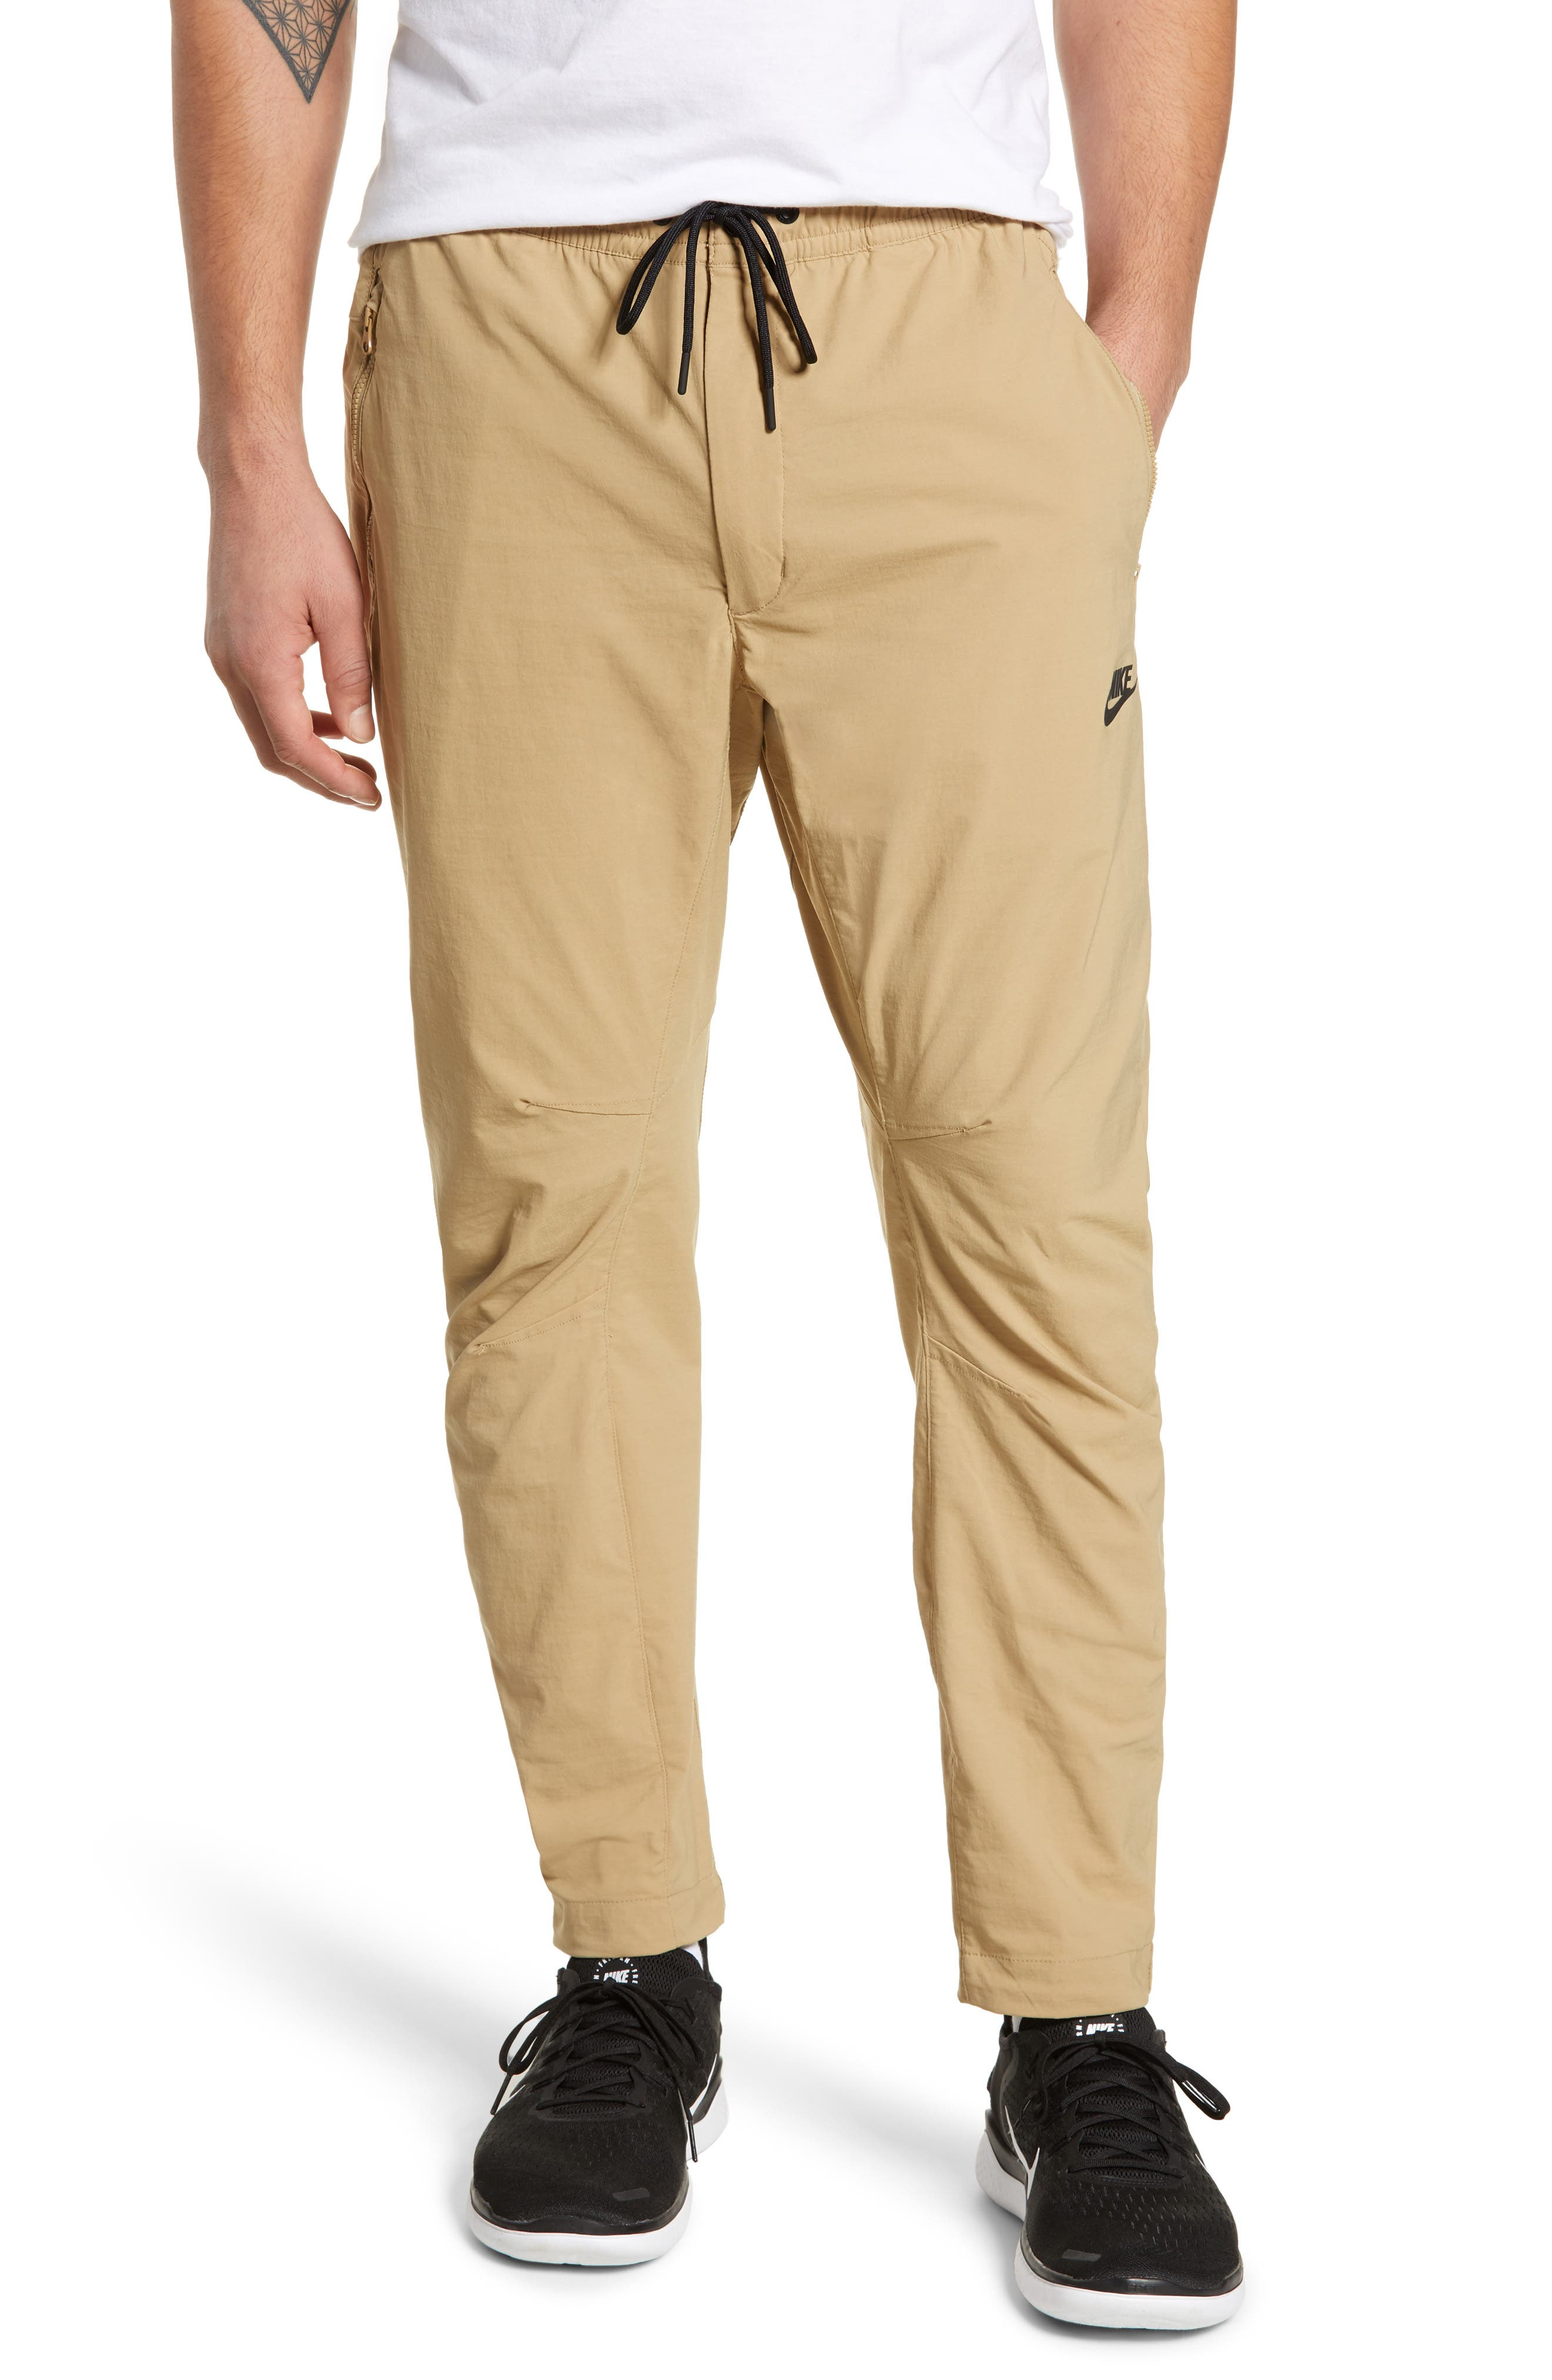 Men's Nike NSW Woven Track Pants